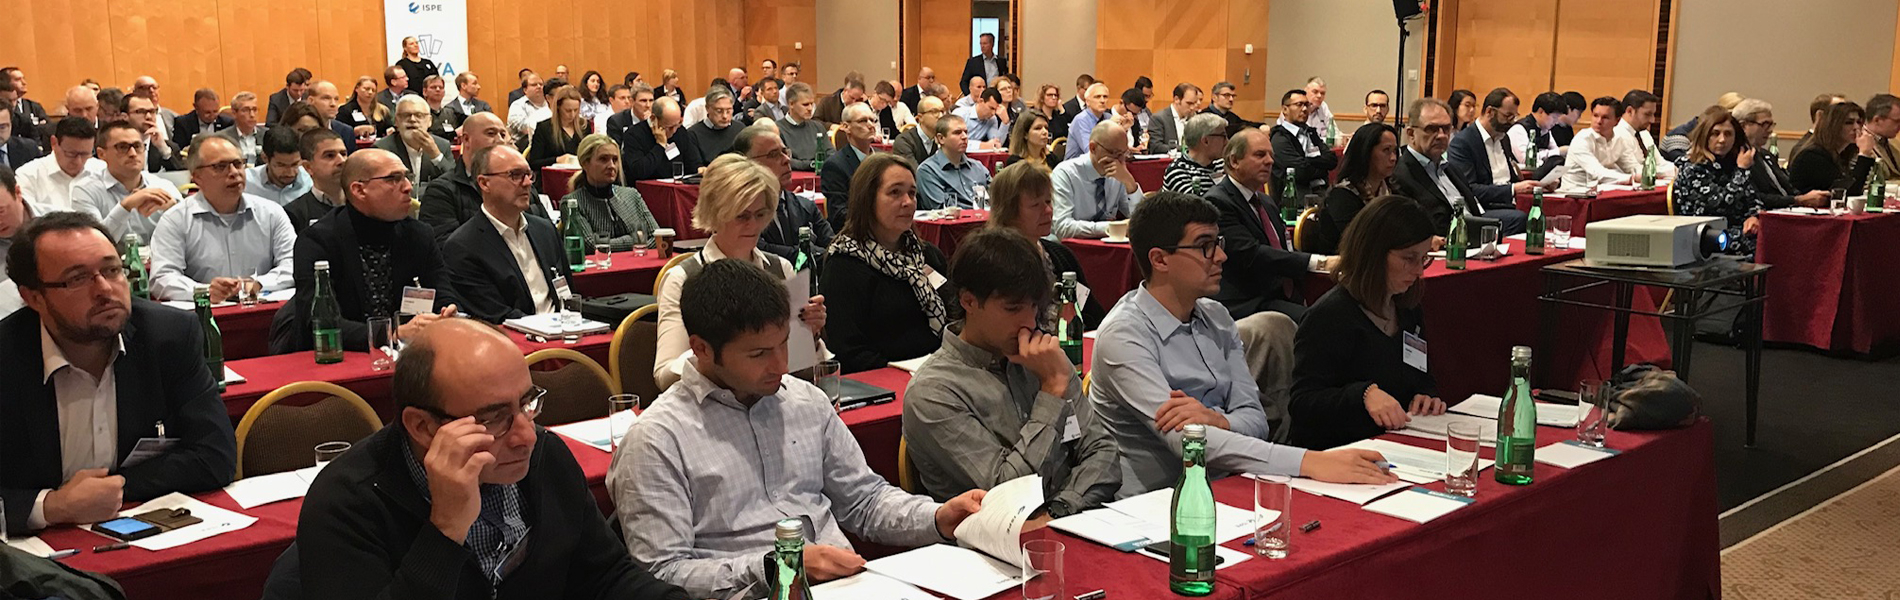 2018 ISPE Europe Aseptic Conference Session